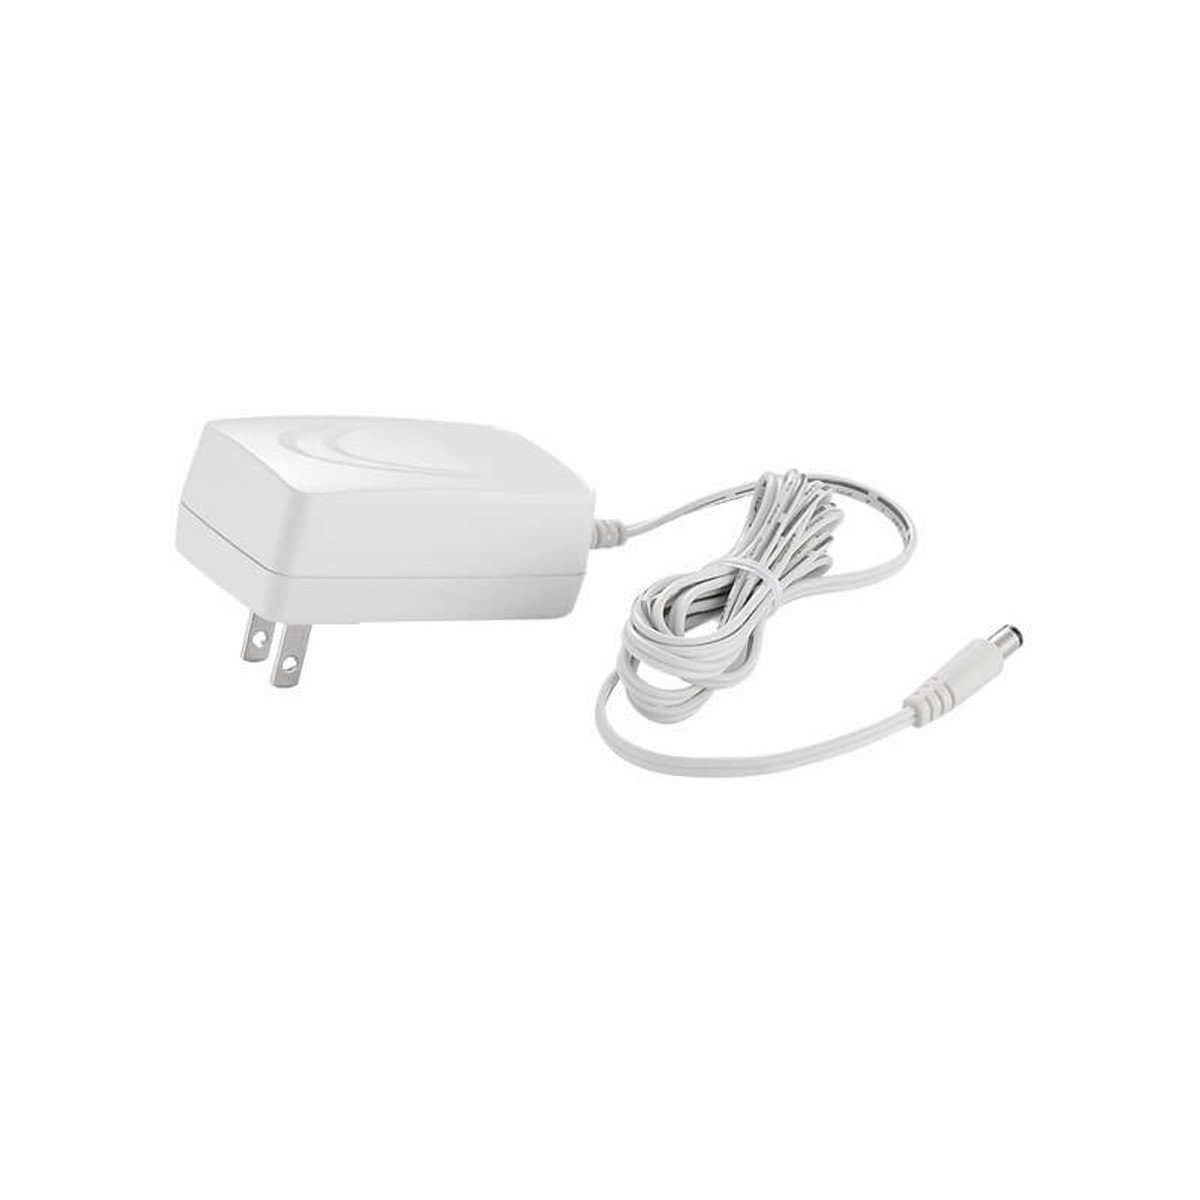 SureCall SureCall Flare 4G 3.0 Cell Phone Signal Booster